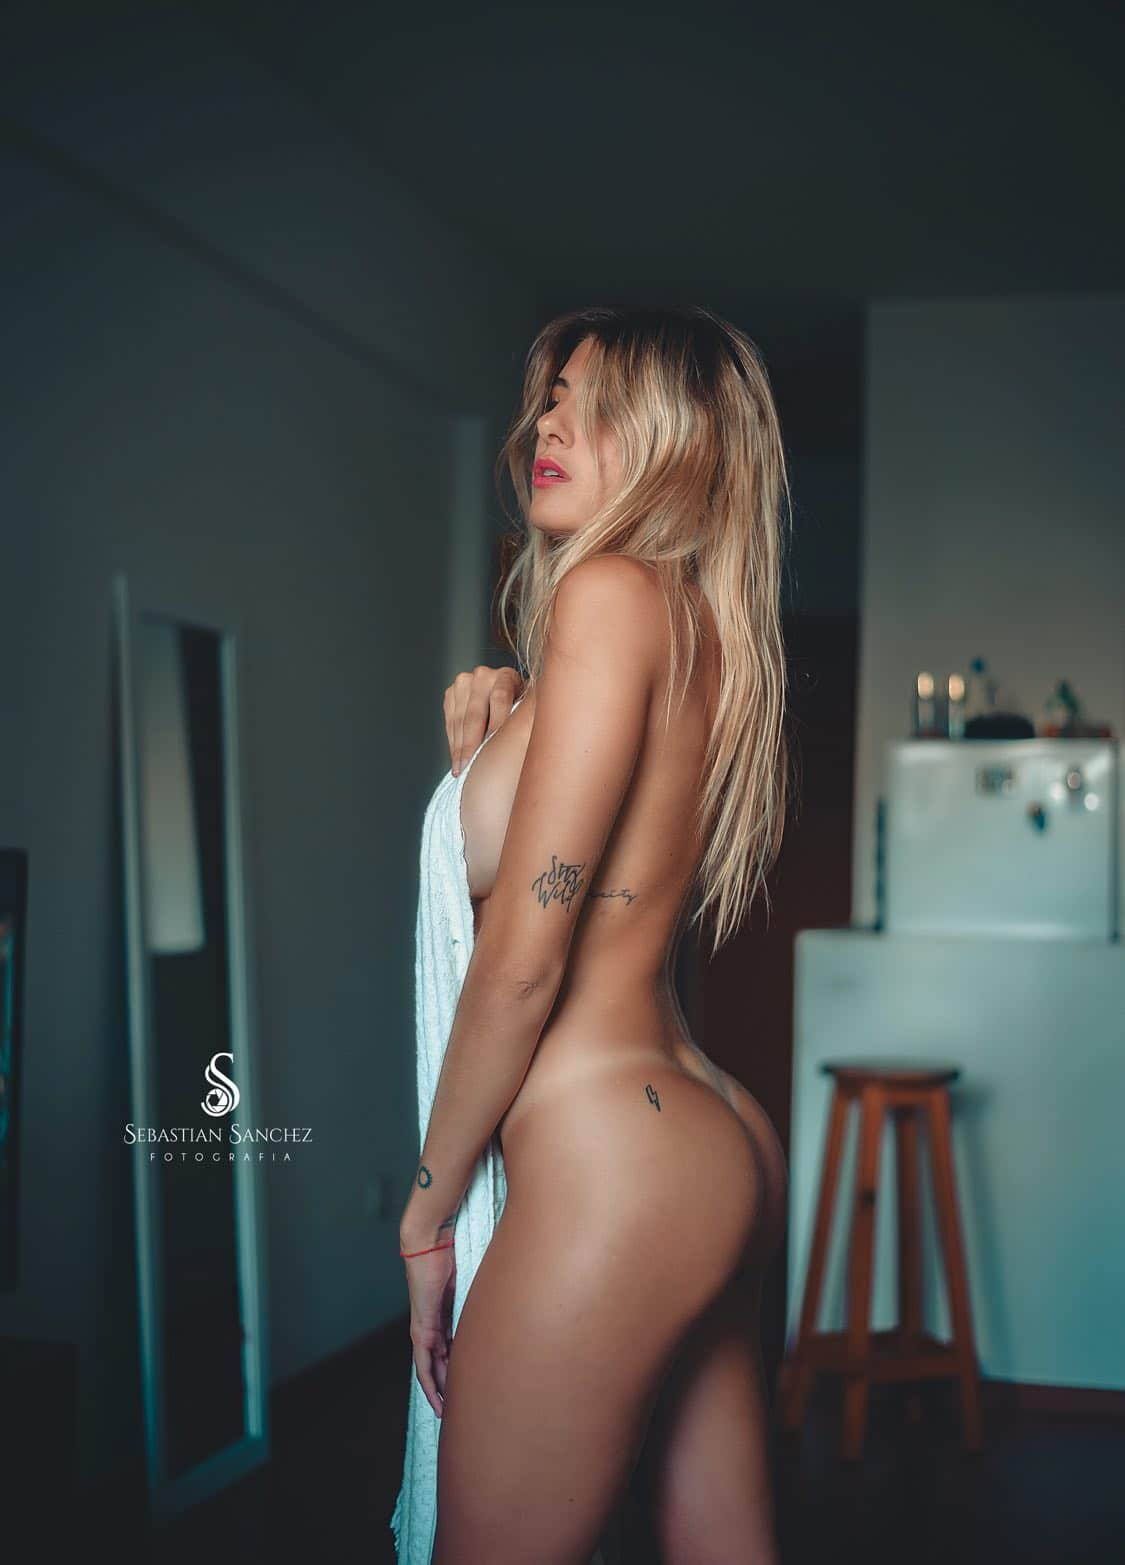 Beautiful blonde Argentine tattooed model Camila Sol Botti in the nude for a boudoir photoshoot showing her bare ass cheeks